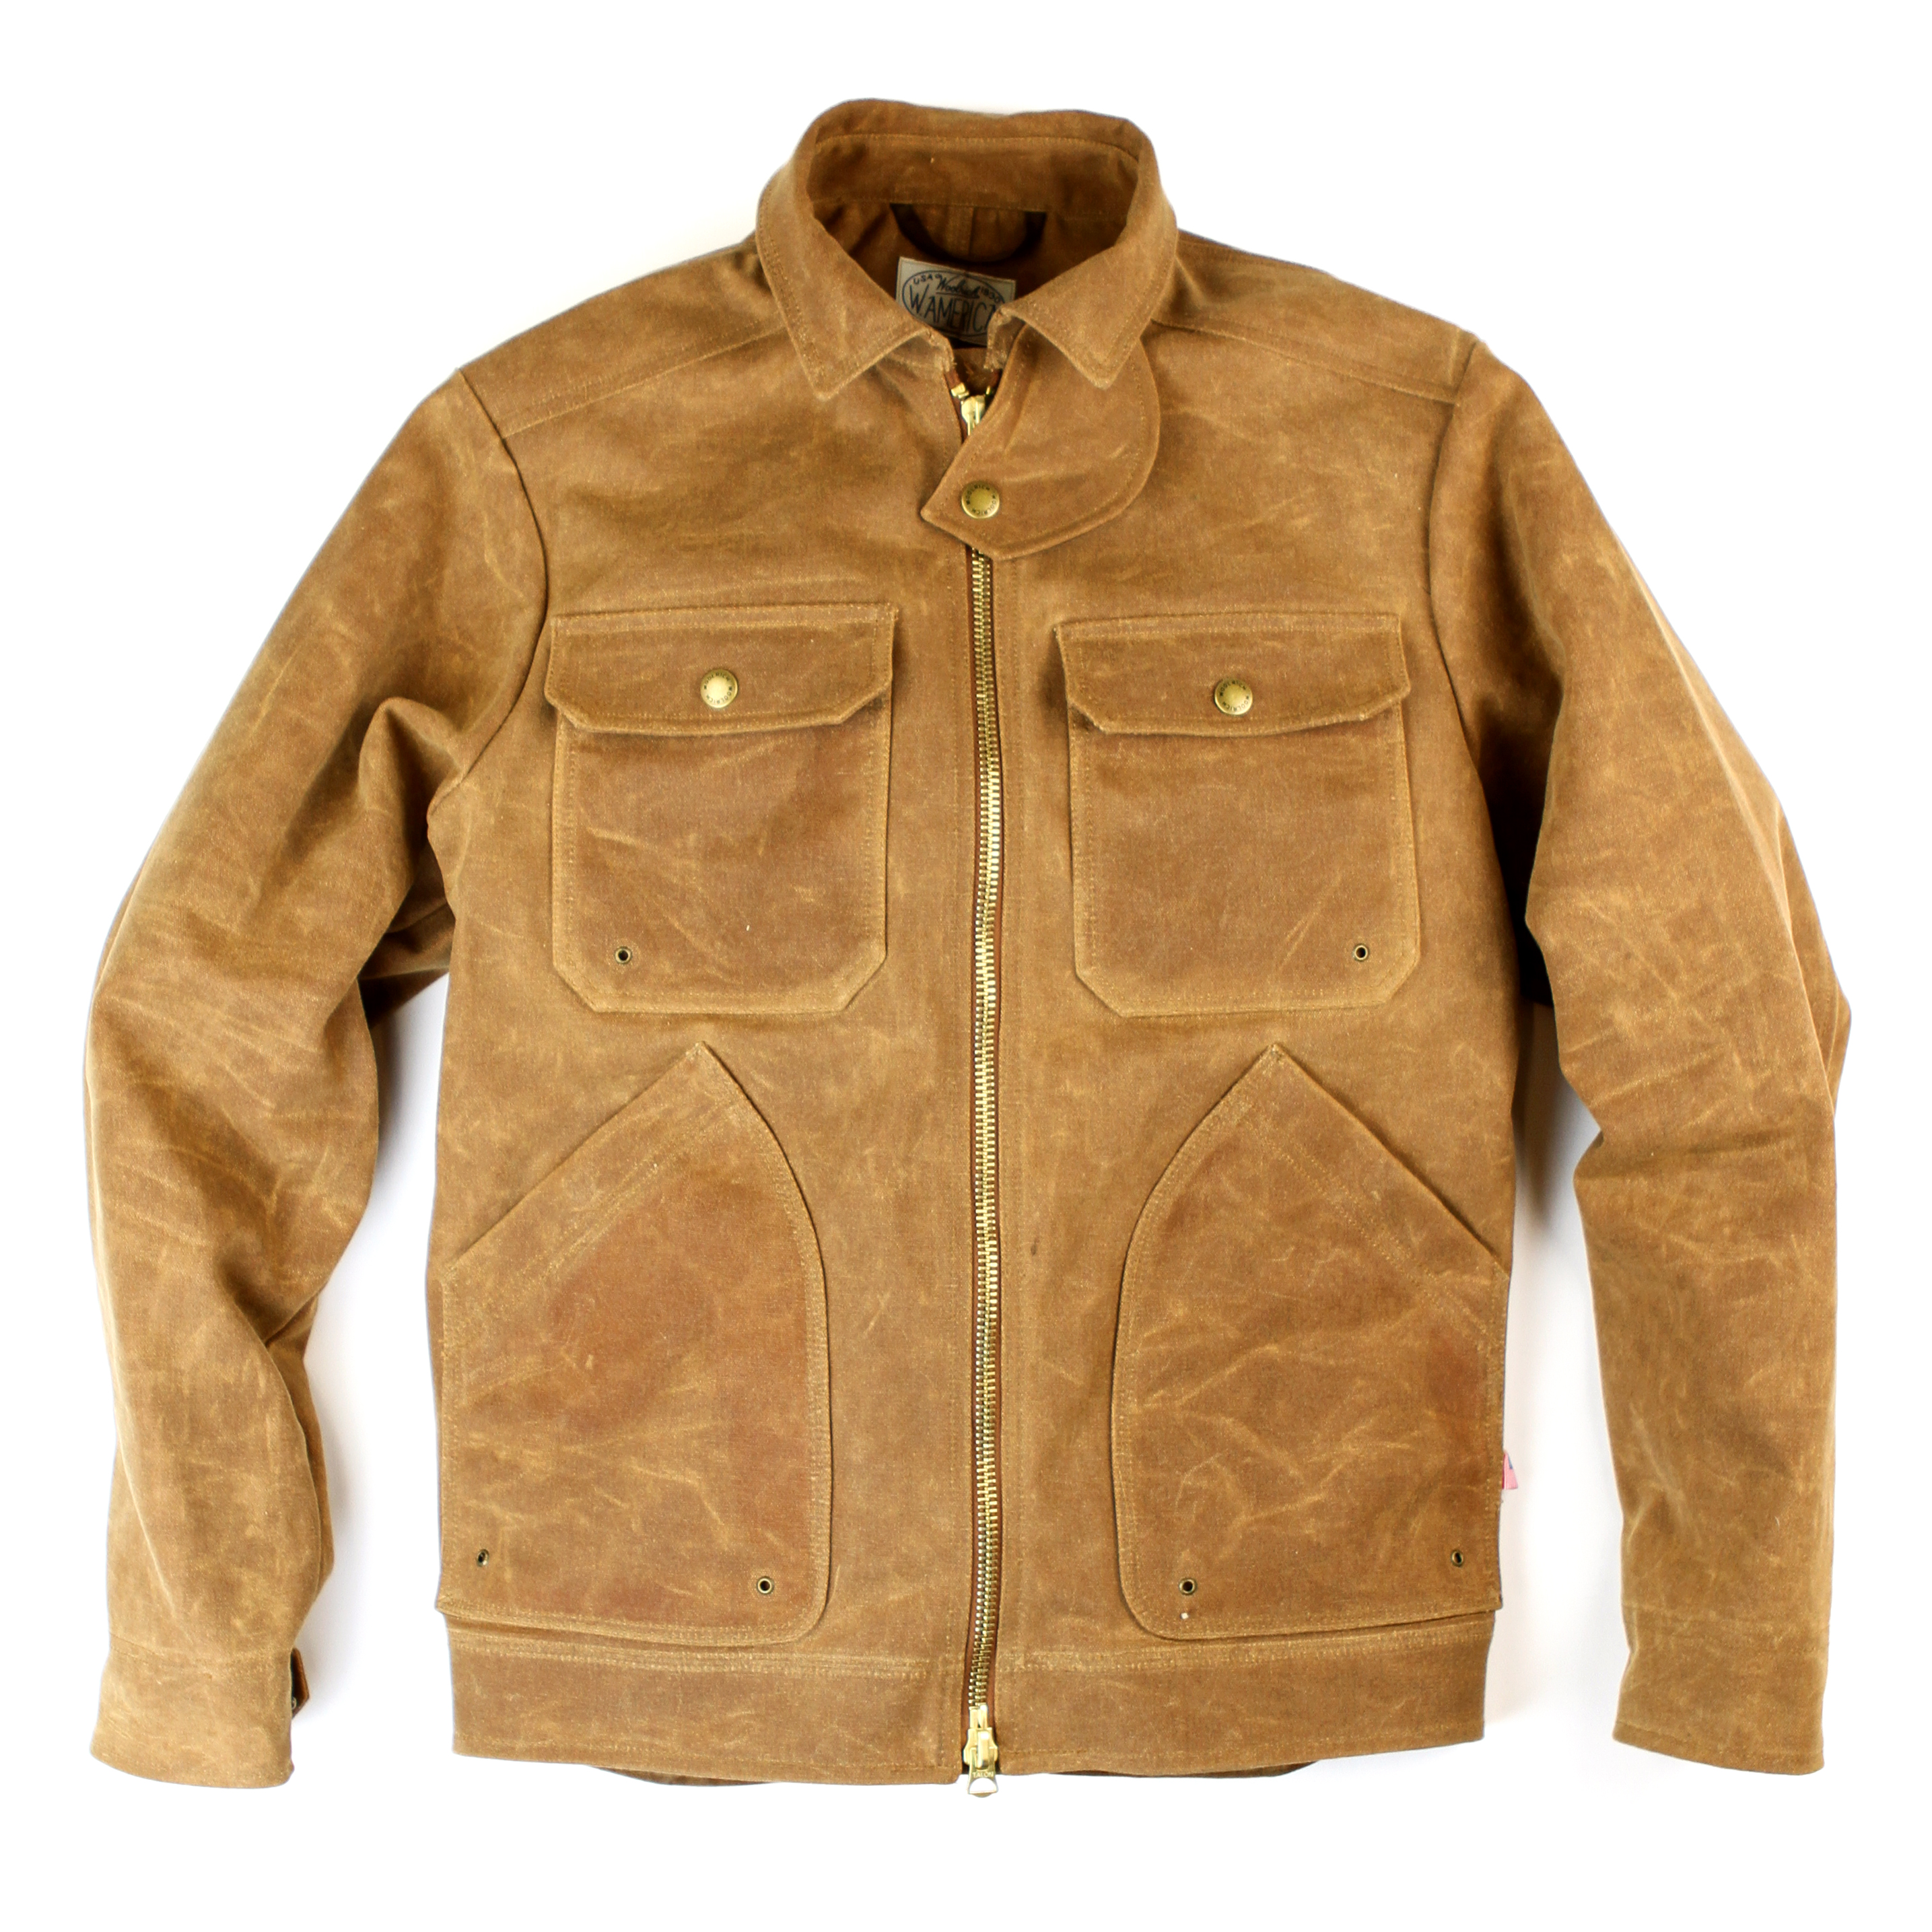 West America X Woolrich Motorcycle Jacket